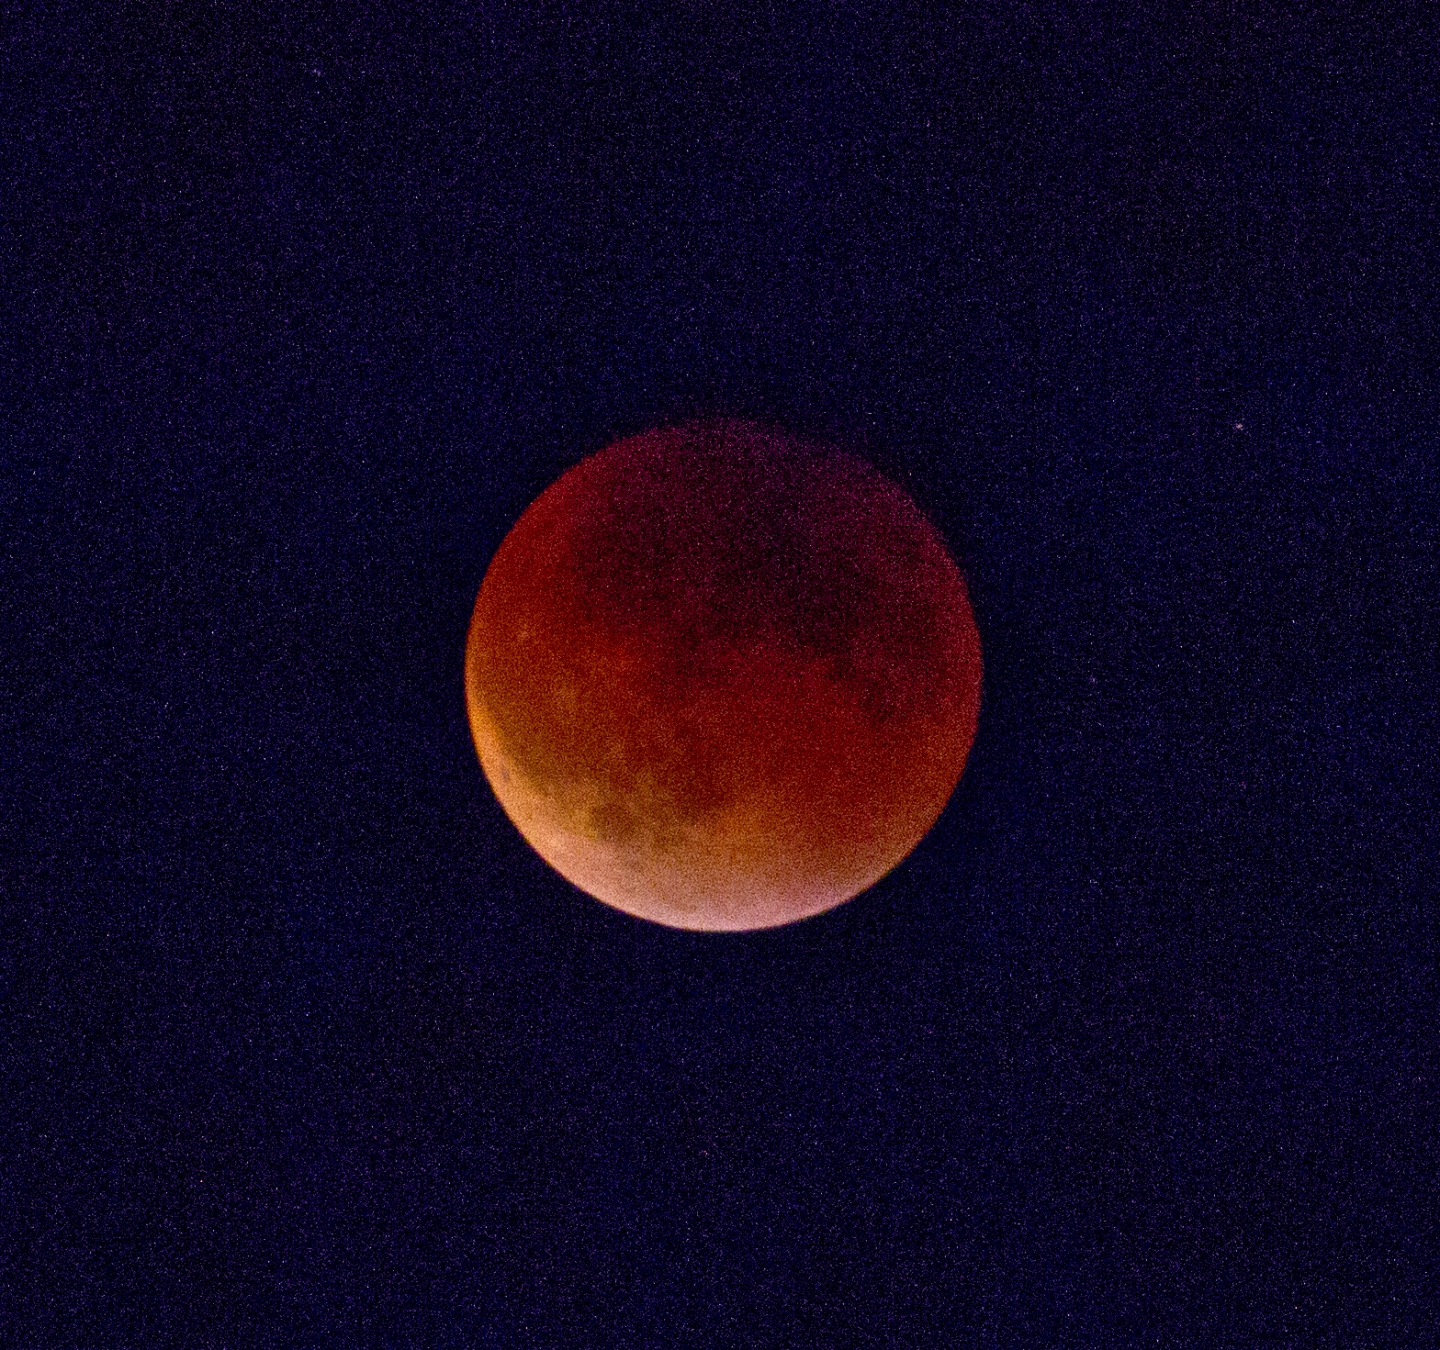 Eclipsed Blood Moon & Stars